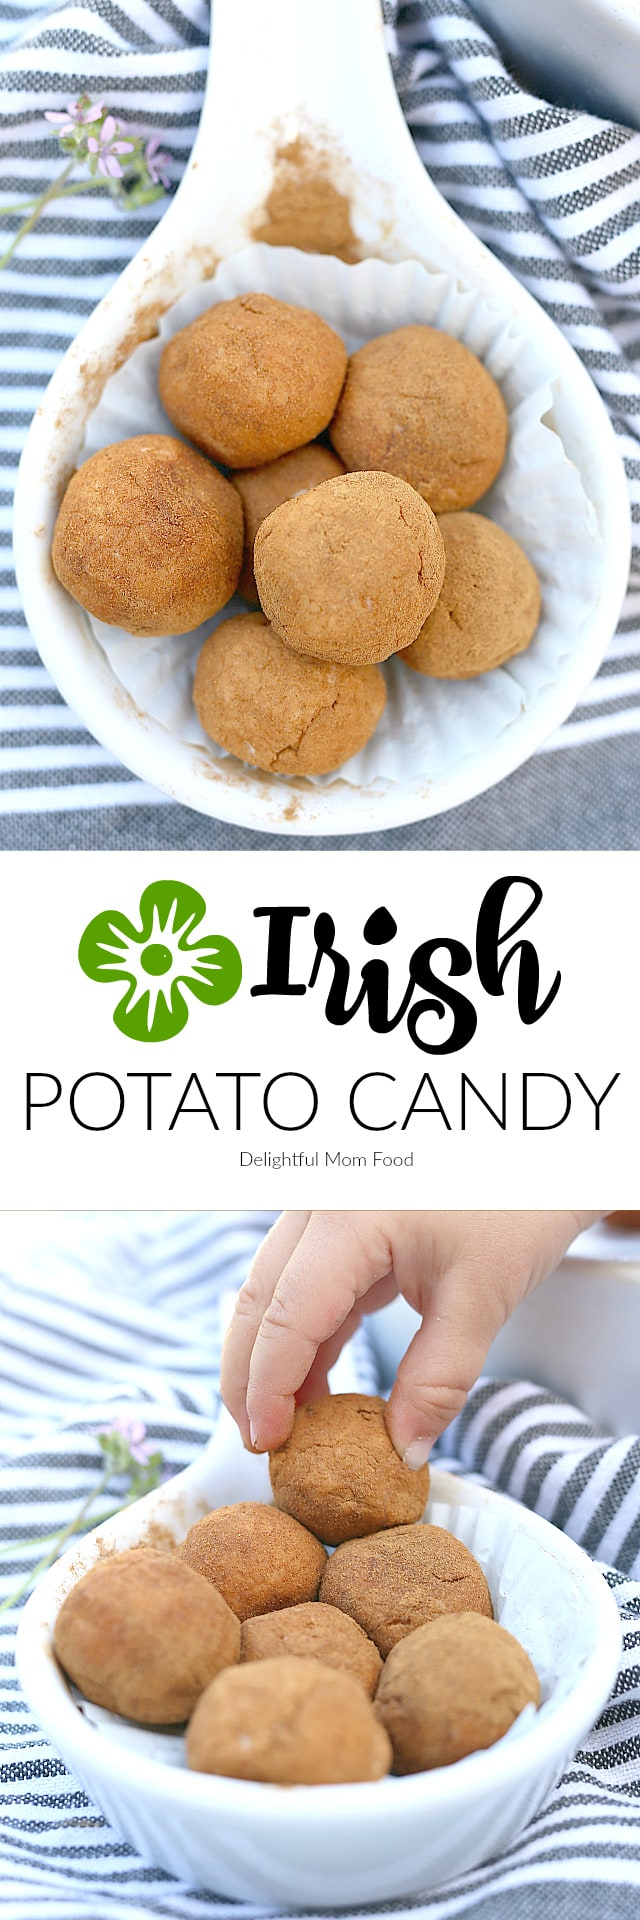 Irish potato candy resembles a potato but is not a potato at all! It is a candy made of cream cheese and sugar rolled into a circular ball and coated with cinnamon!  Perfect for St. Patrick's Day!